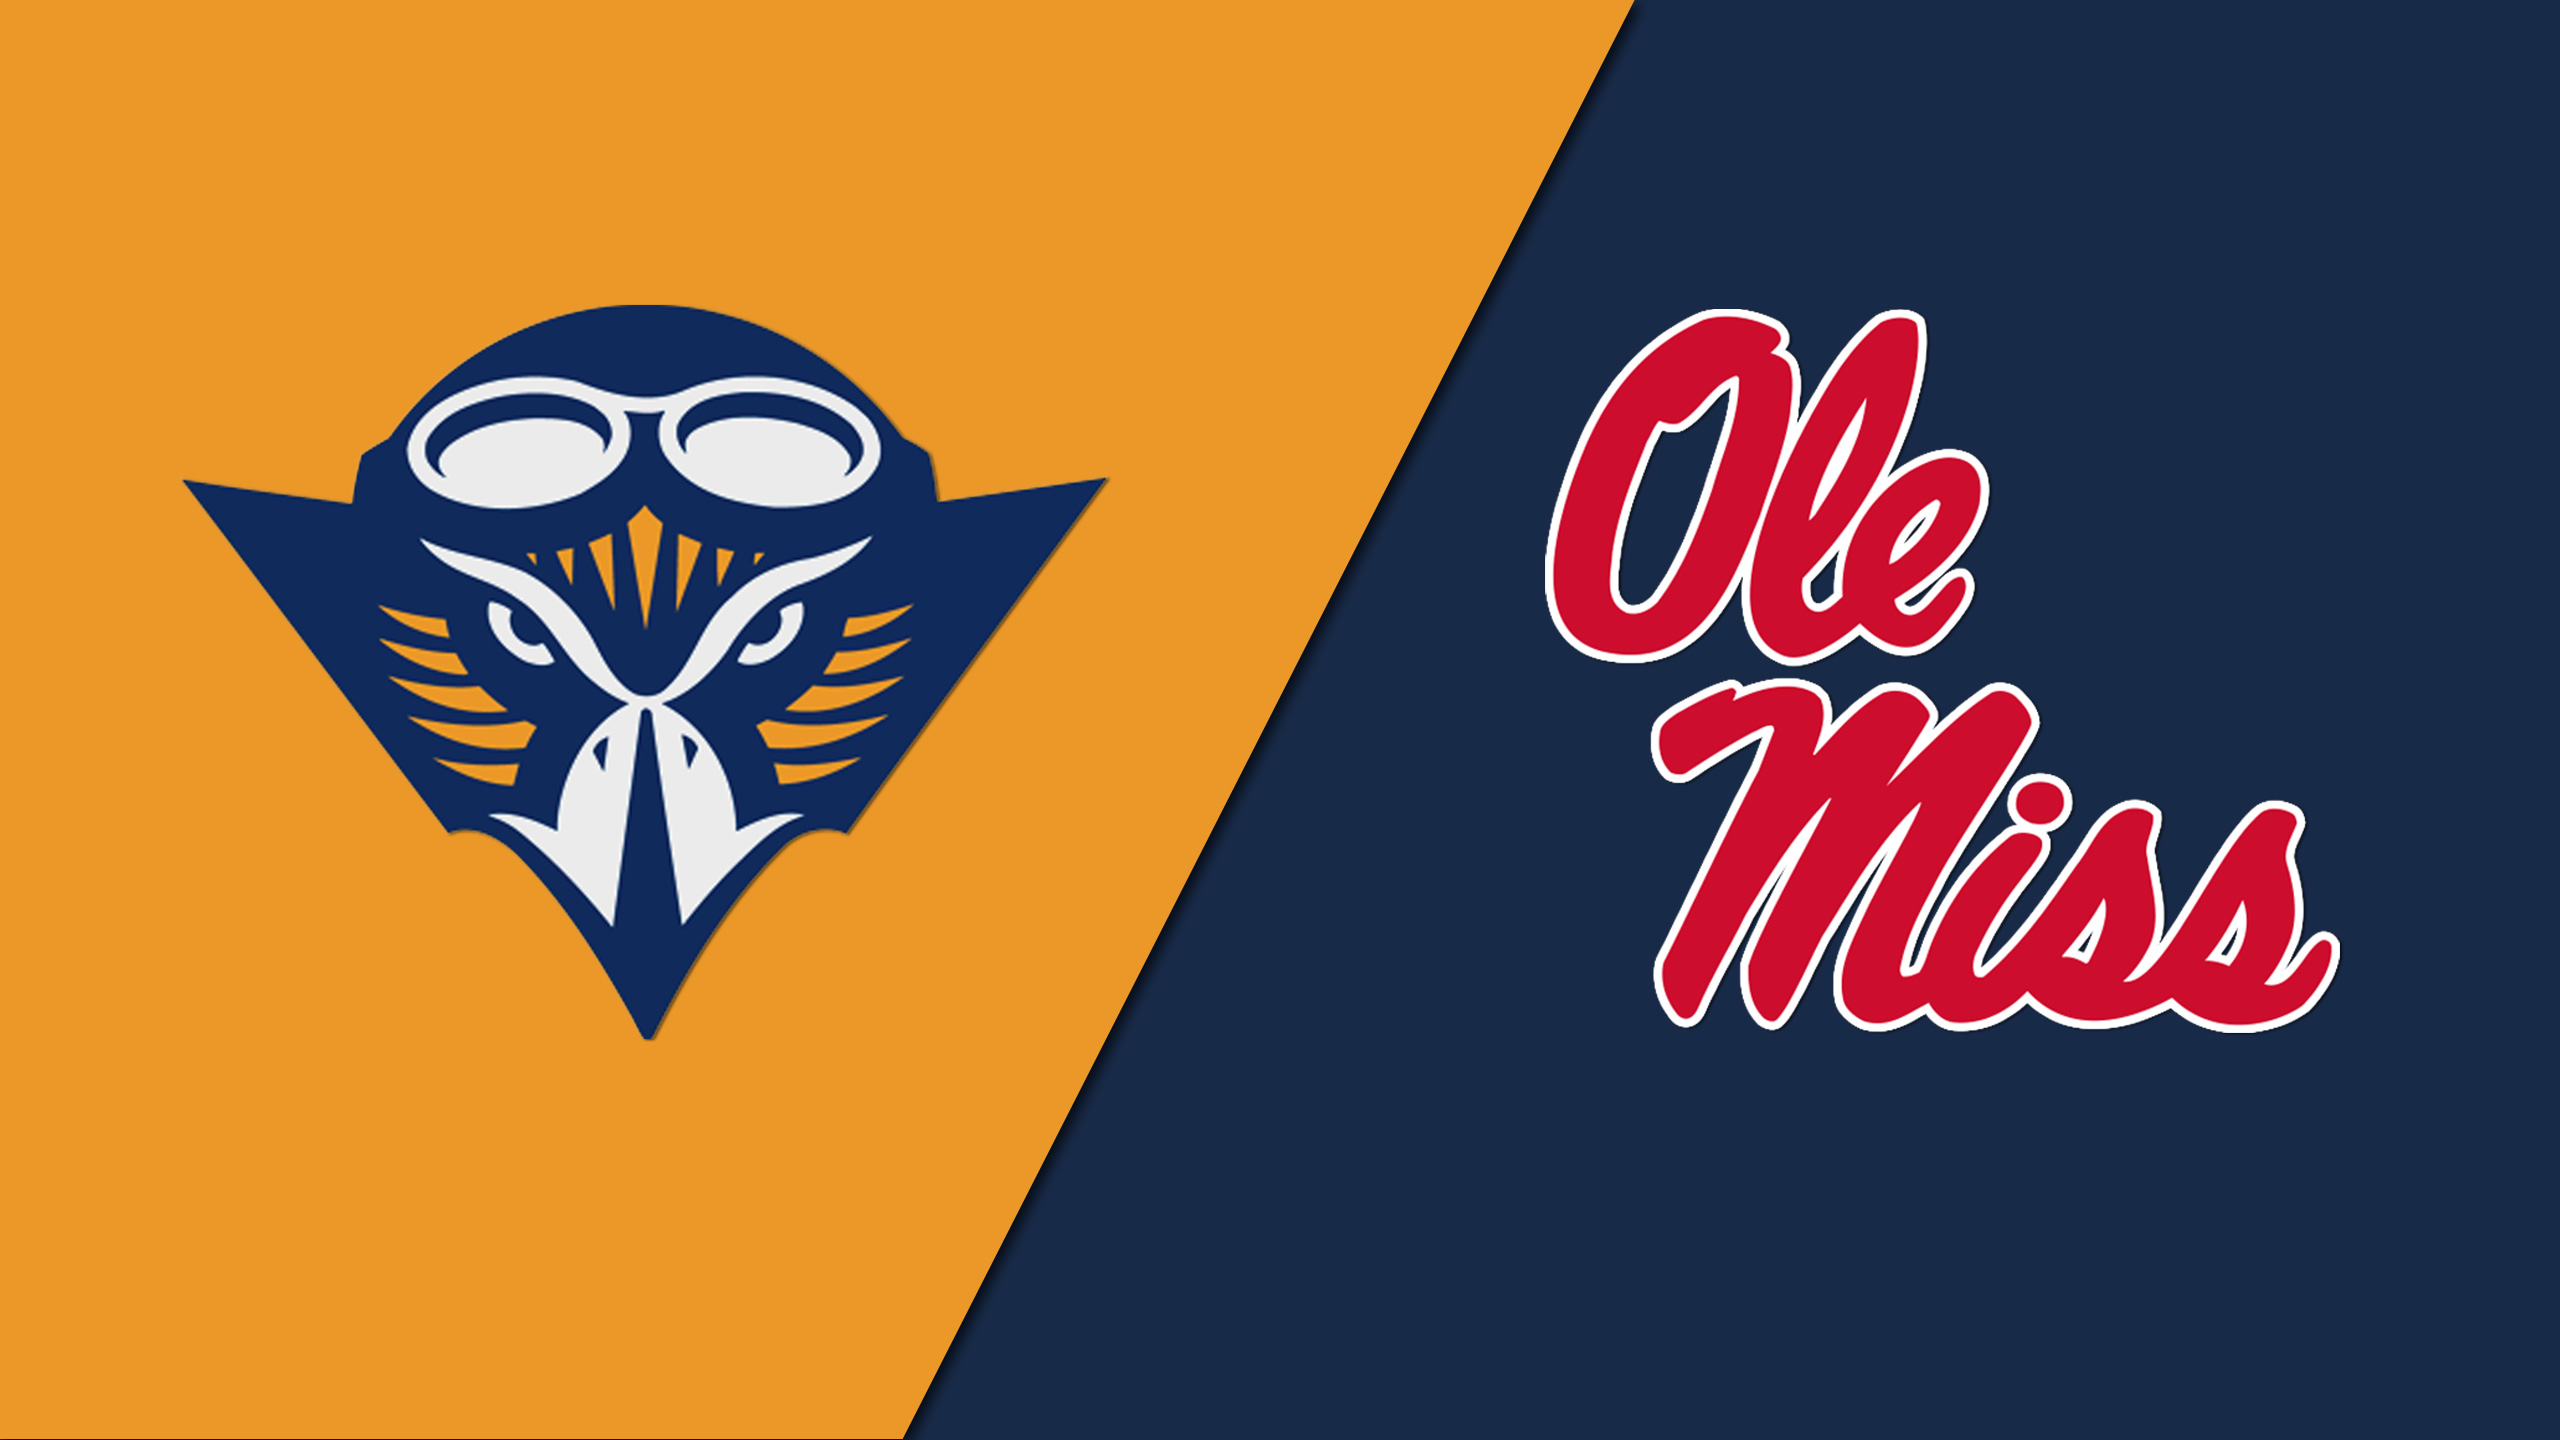 UT Martin vs. Ole Miss (re-air)